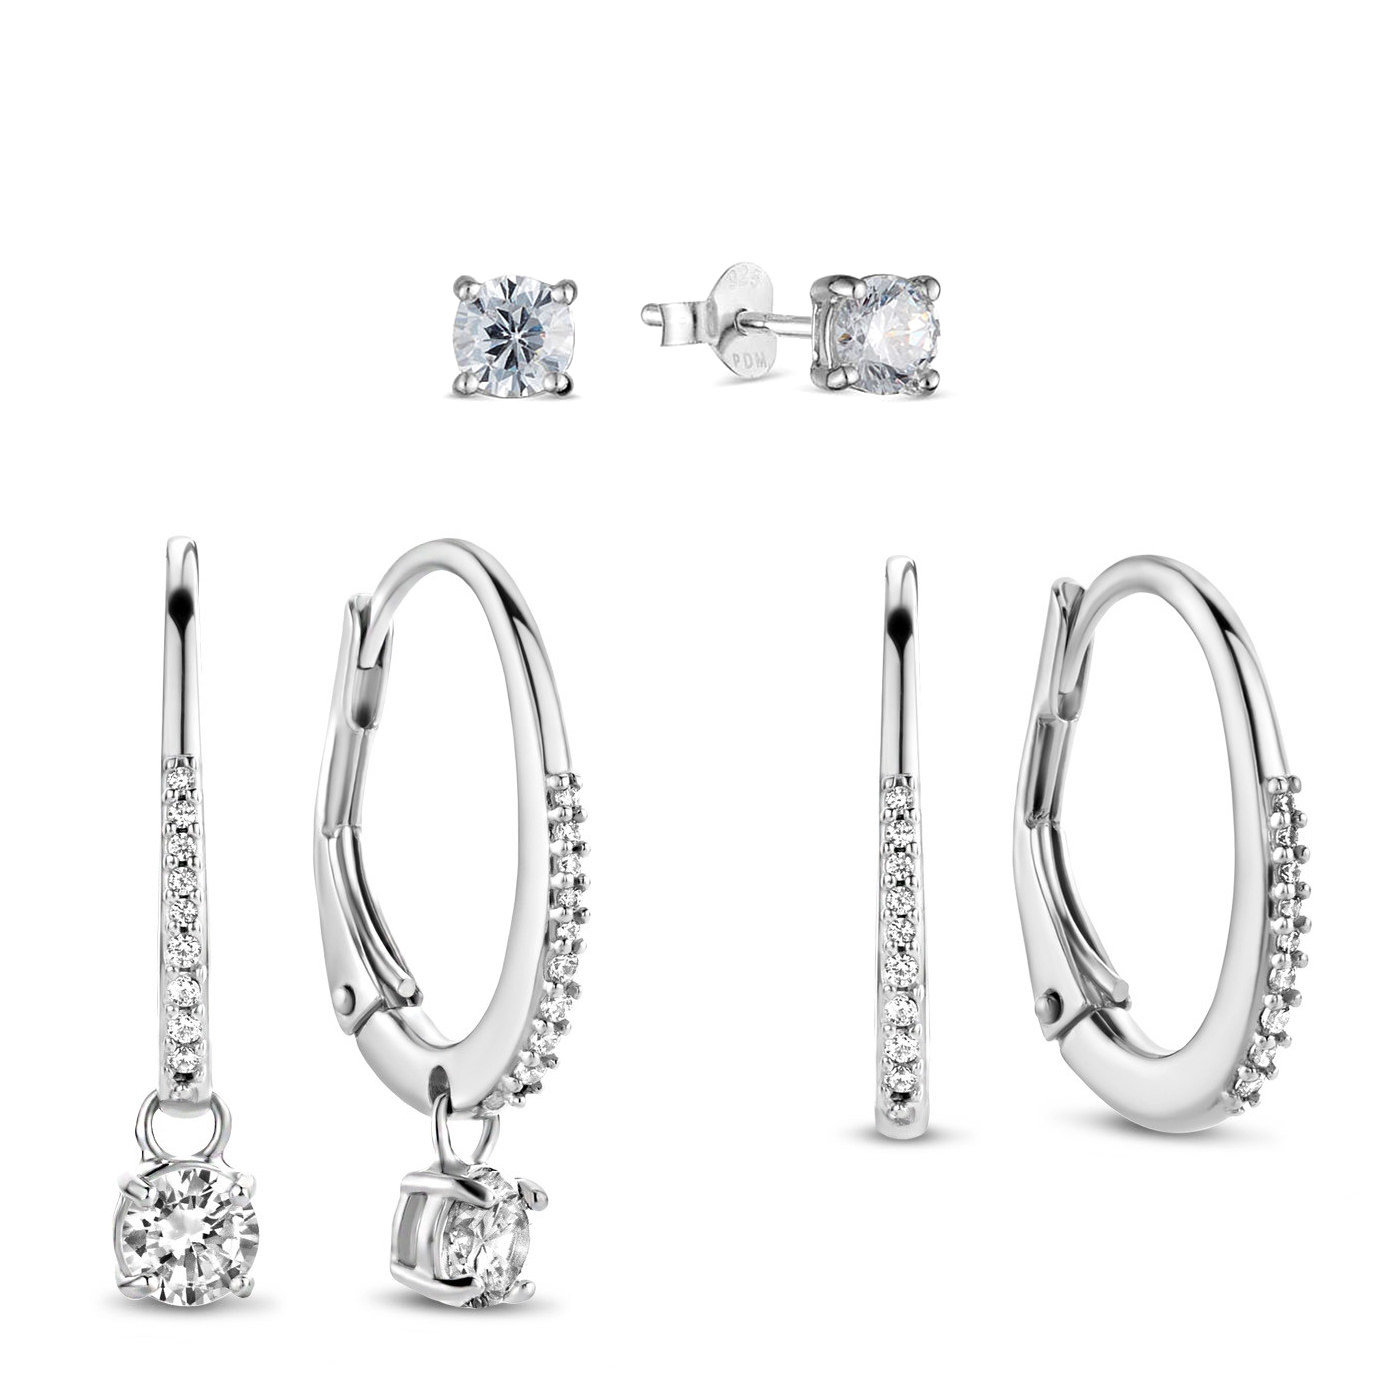 Parte di Me 925 sterling silver earparty giftset